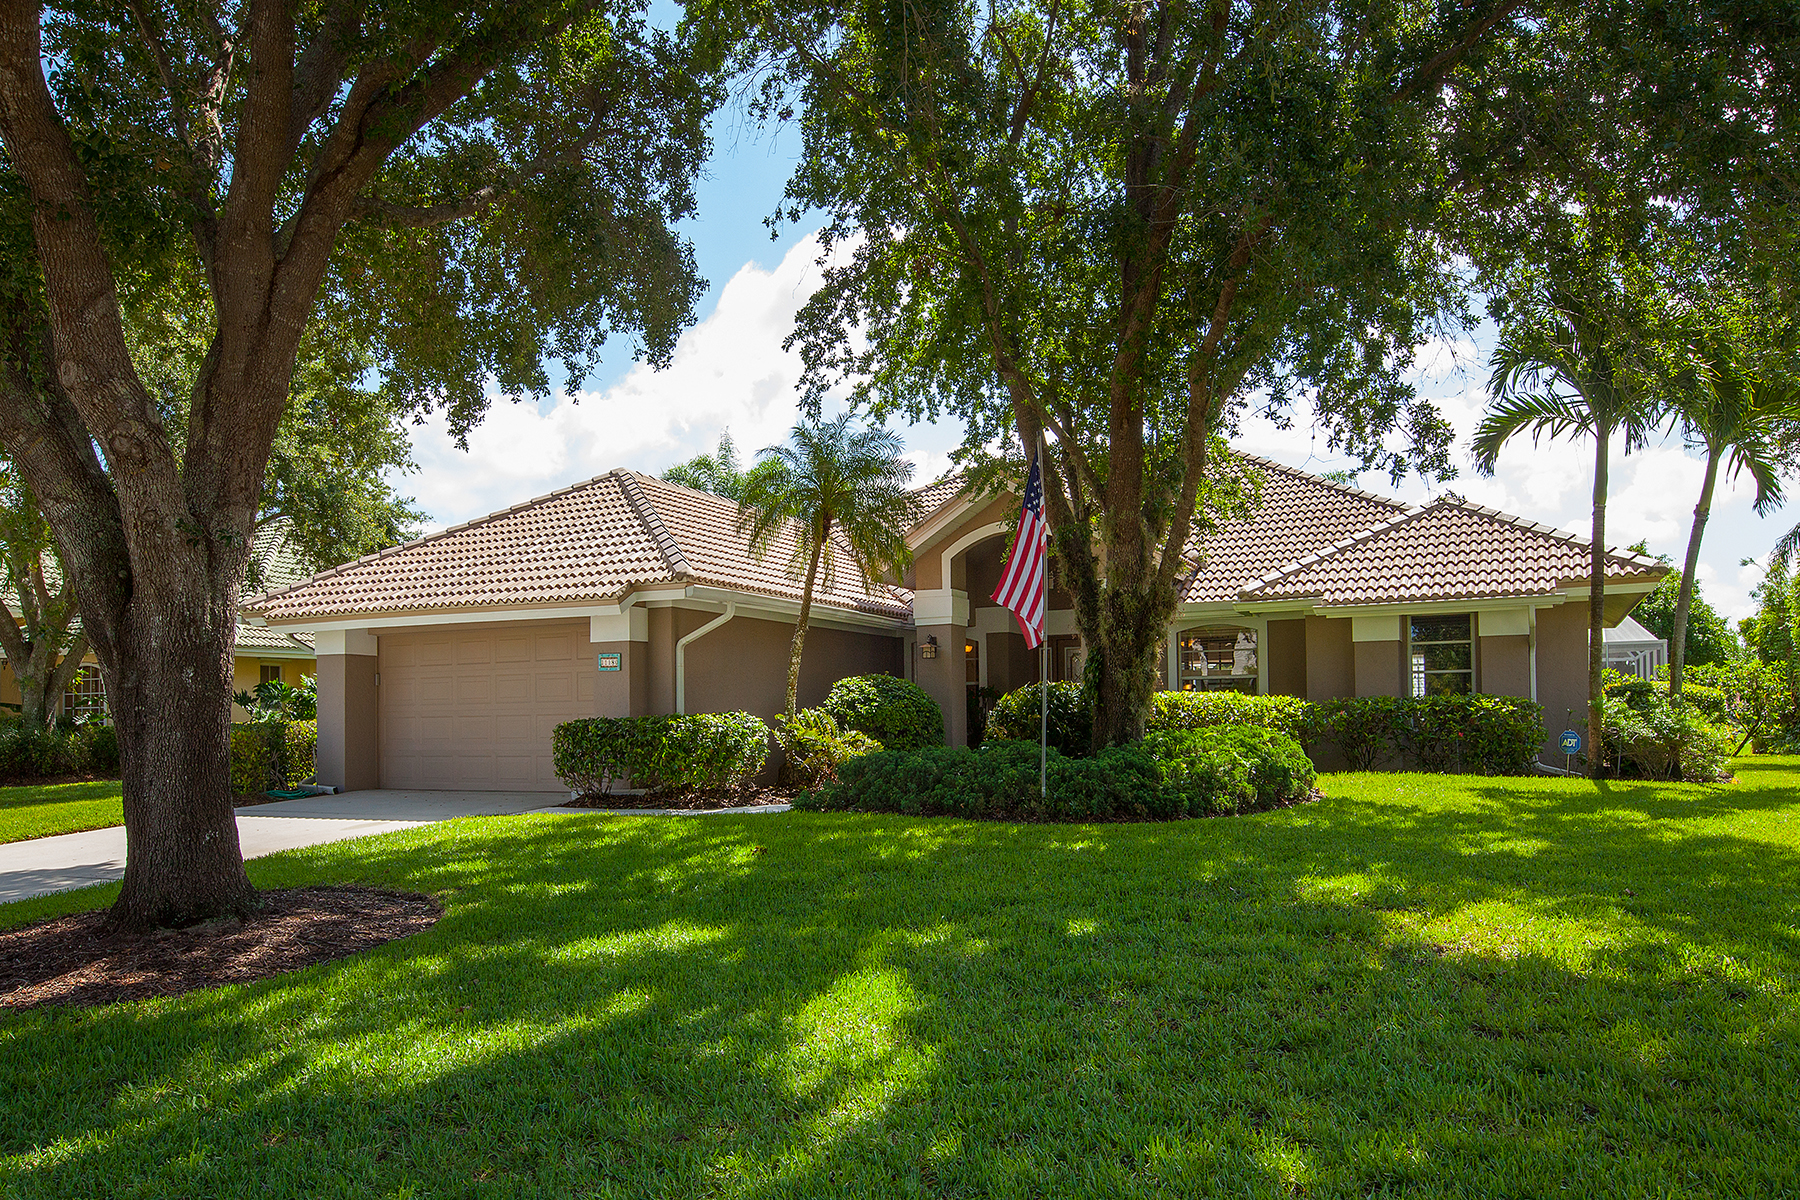 Single Family Home for Sale at 11180 Longshore Way W, Naples, FL 34119 11180 Longshore Way W Naples, Florida 34119 United States